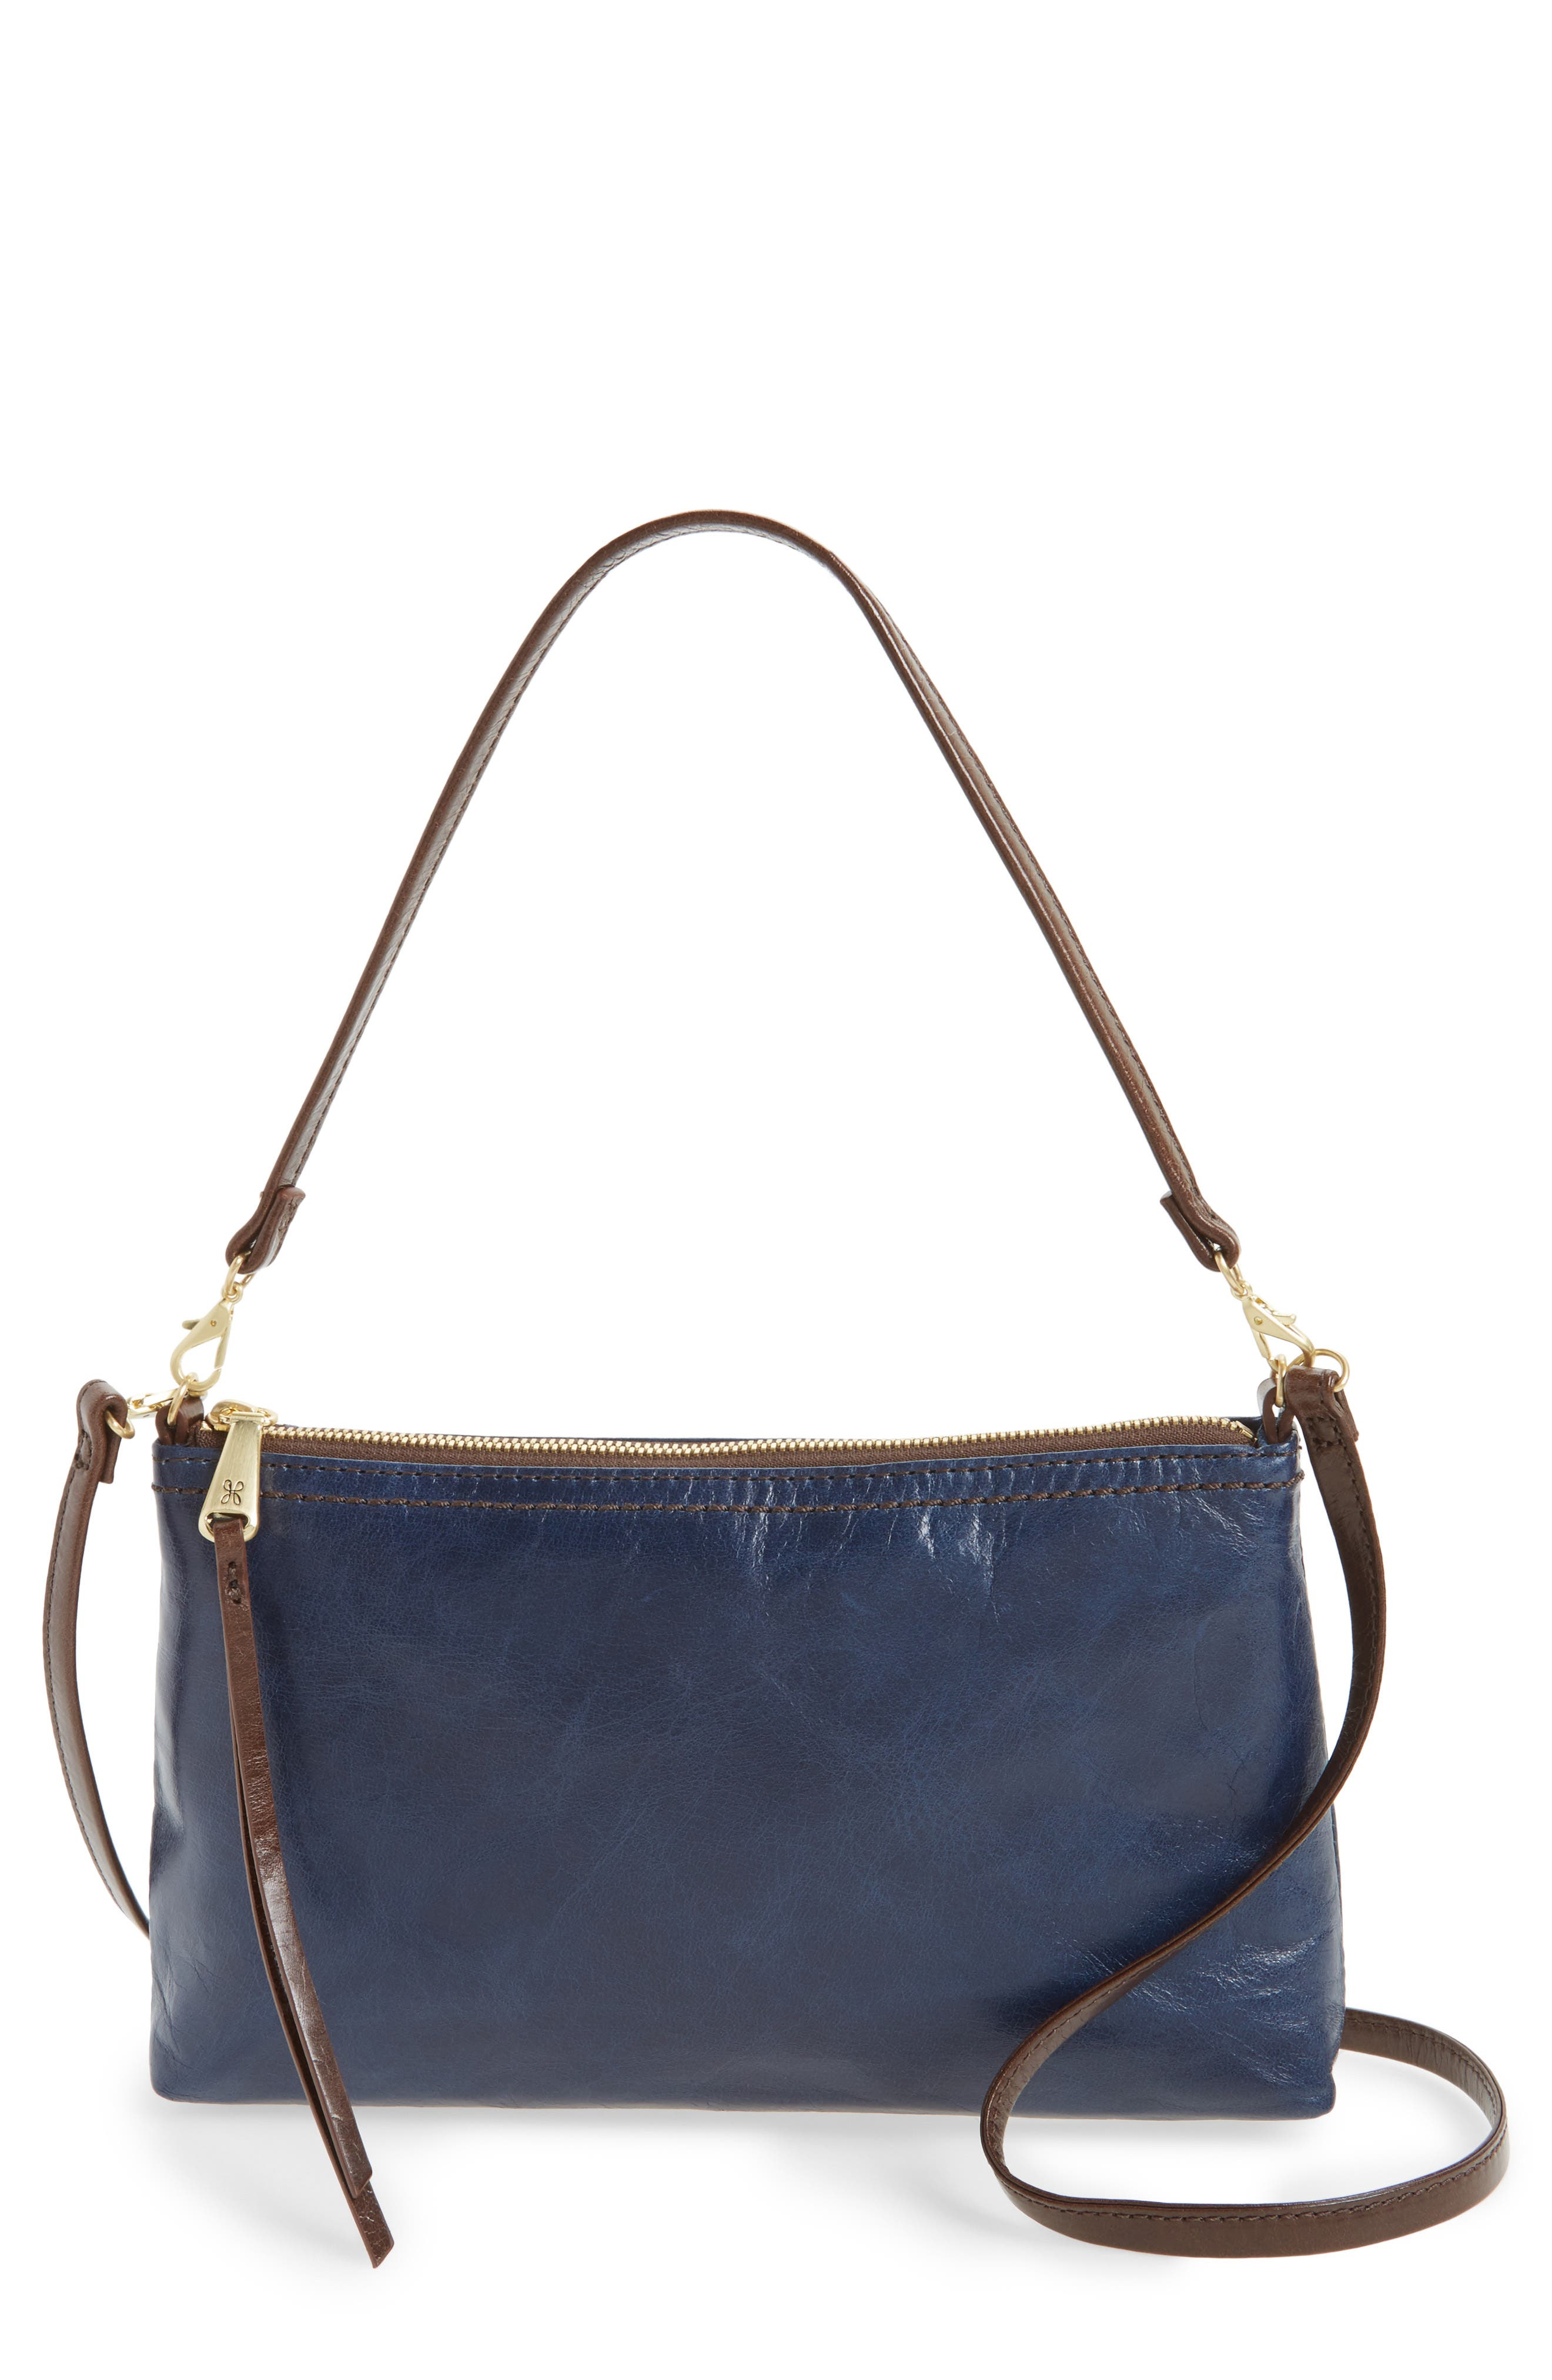 'Darcy' Leather Crossbody Bag,                             Main thumbnail 18, color,